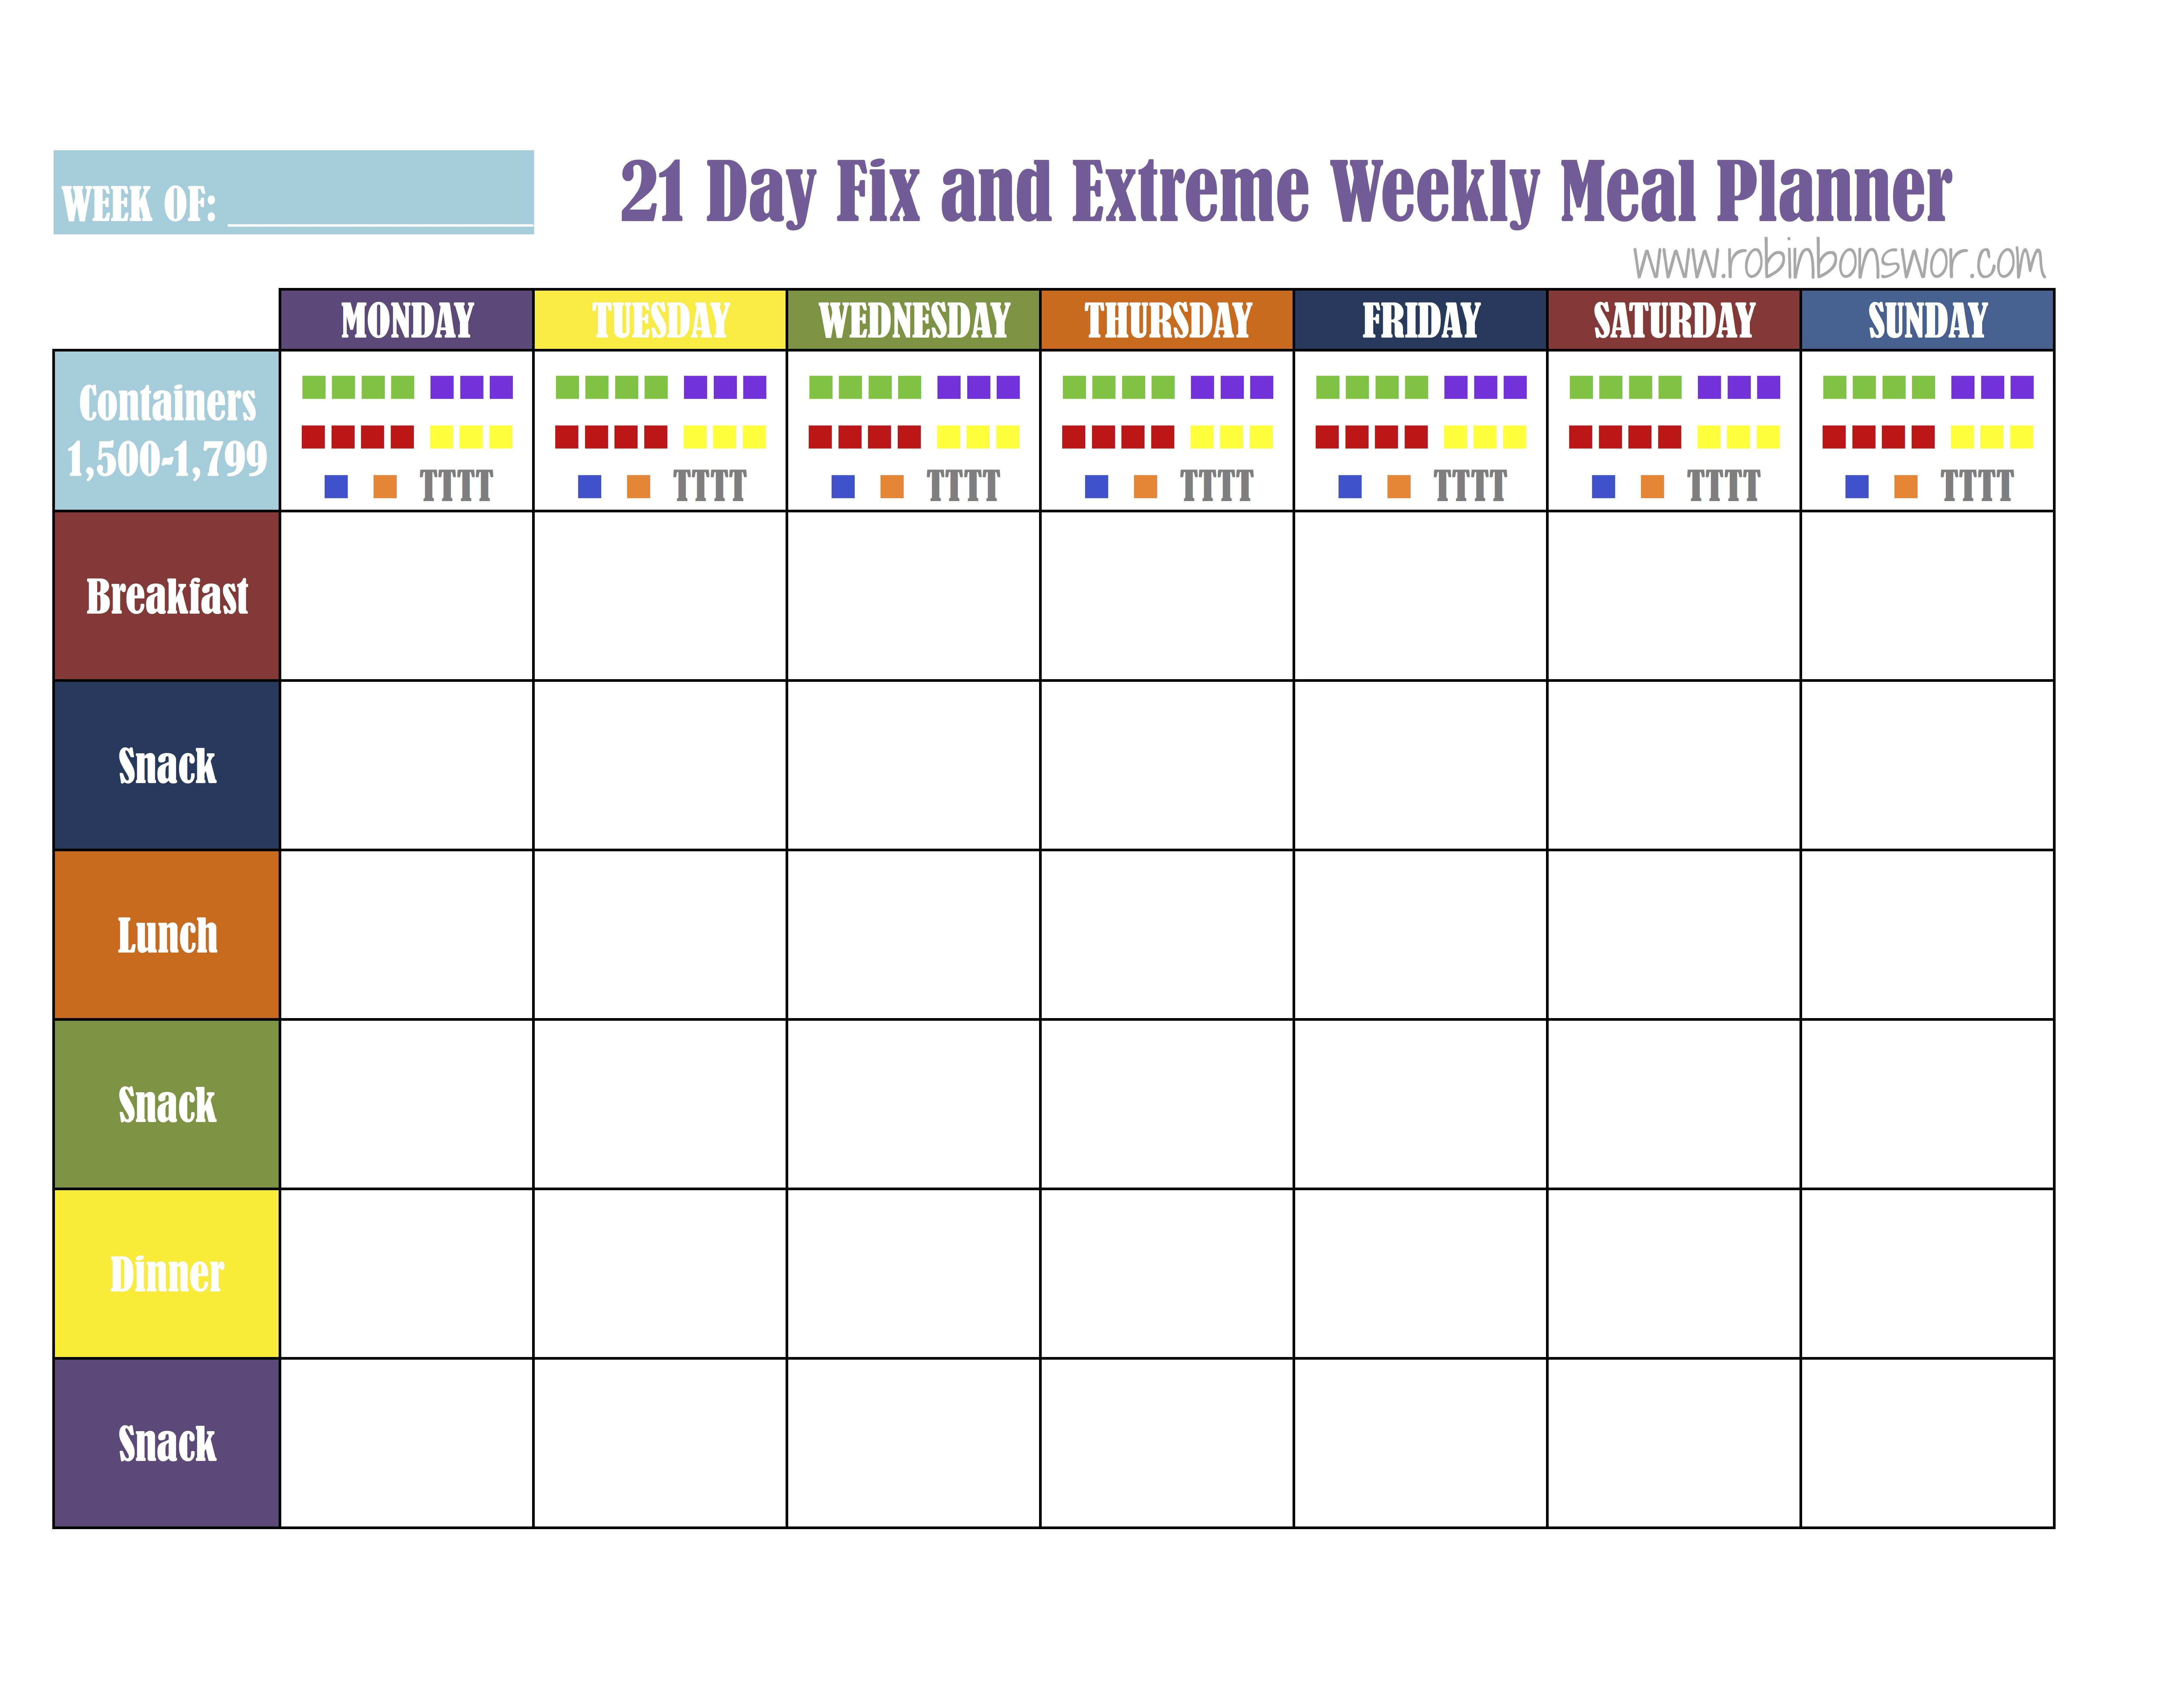 Meal plan sheets fix day pinterest meals food and also charts frodo fullring rh